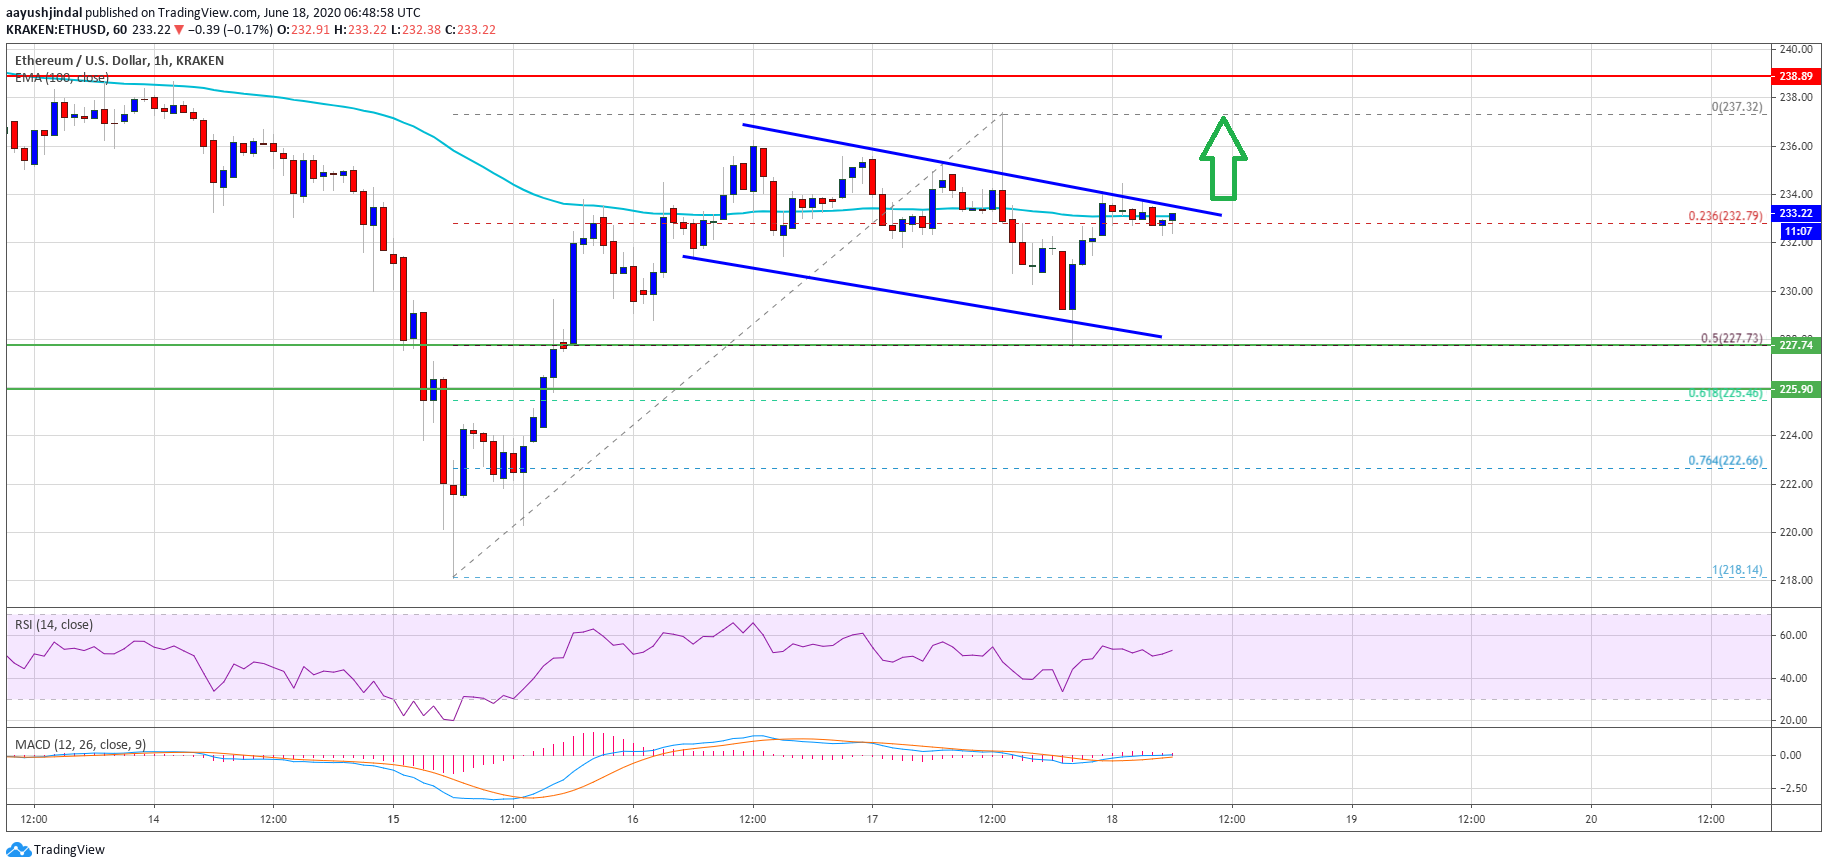 Ethereum Might Not Go Down Quietly: Risk of Bullish Break Grows Above $240